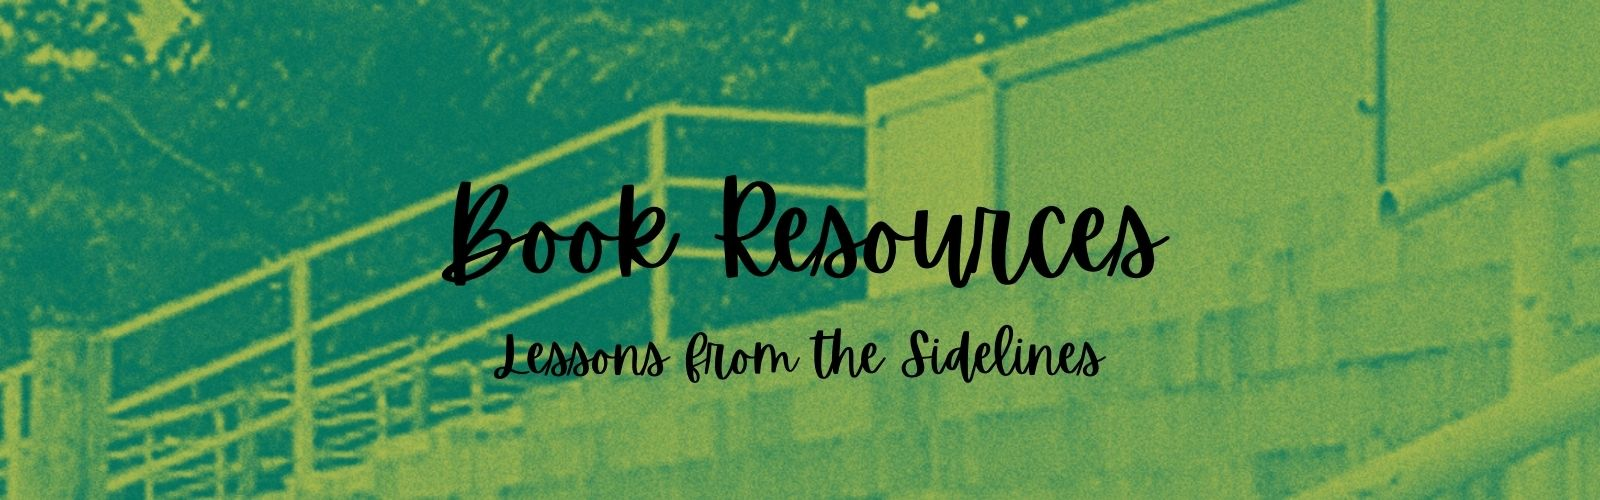 Author Beth Walker's Book Resources Page Lessons from the Sidelines